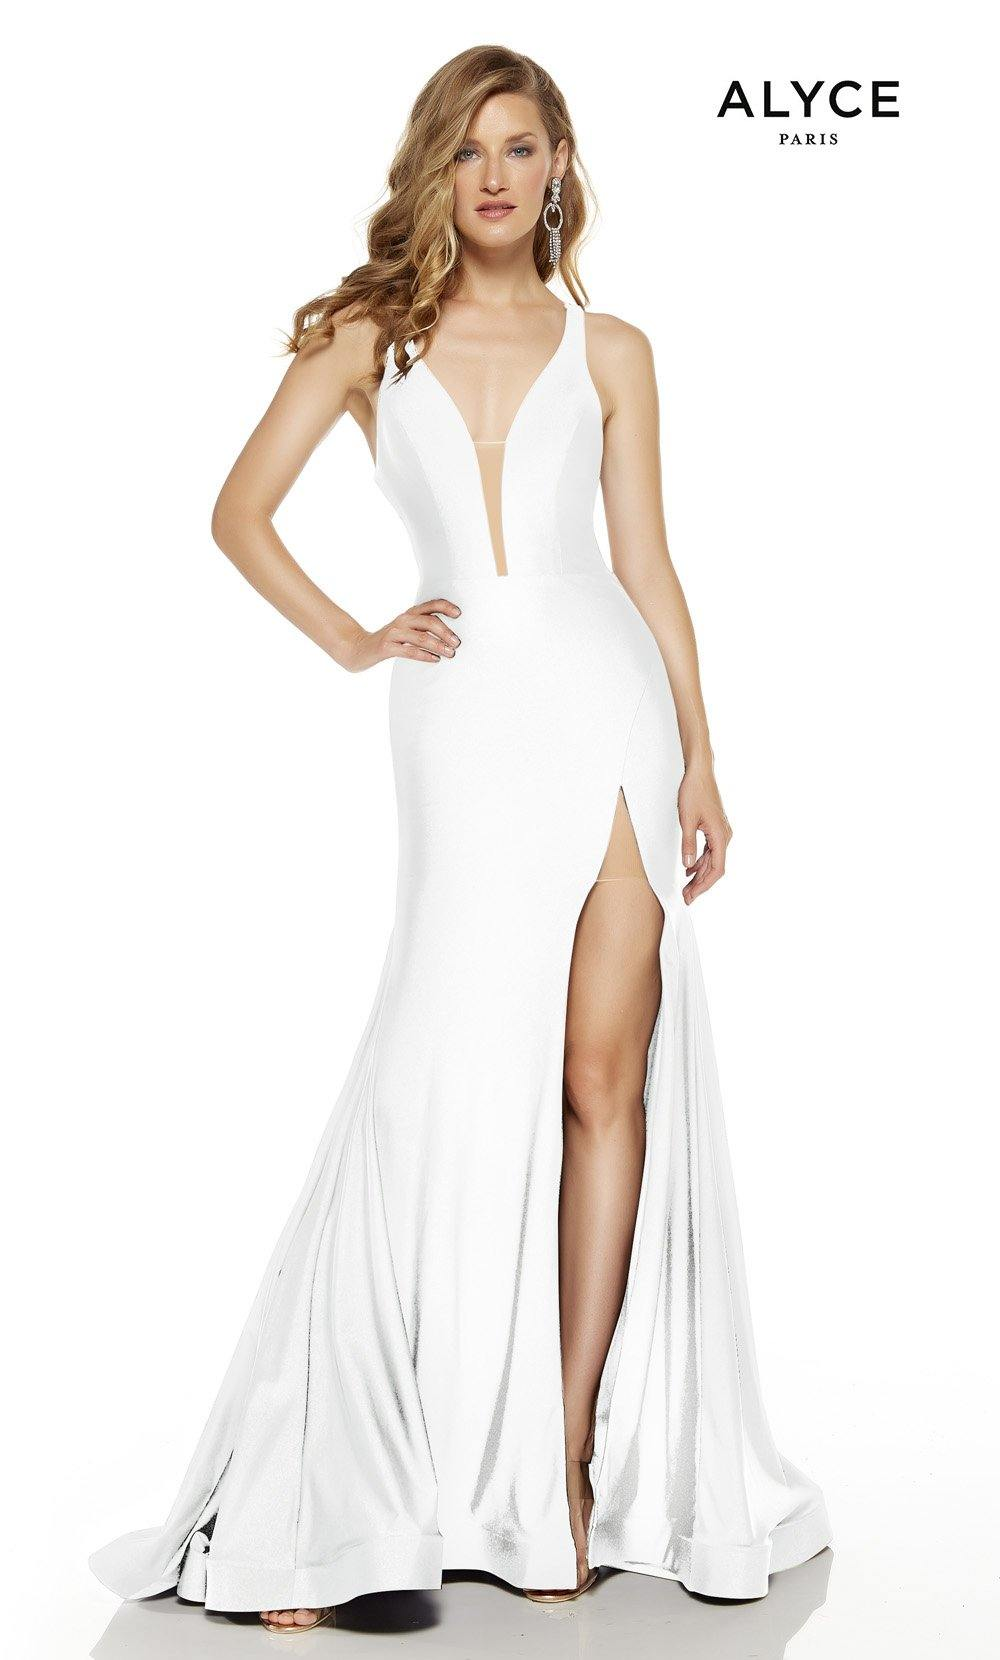 Diamond White prom dress with a plunging neckline and a slit